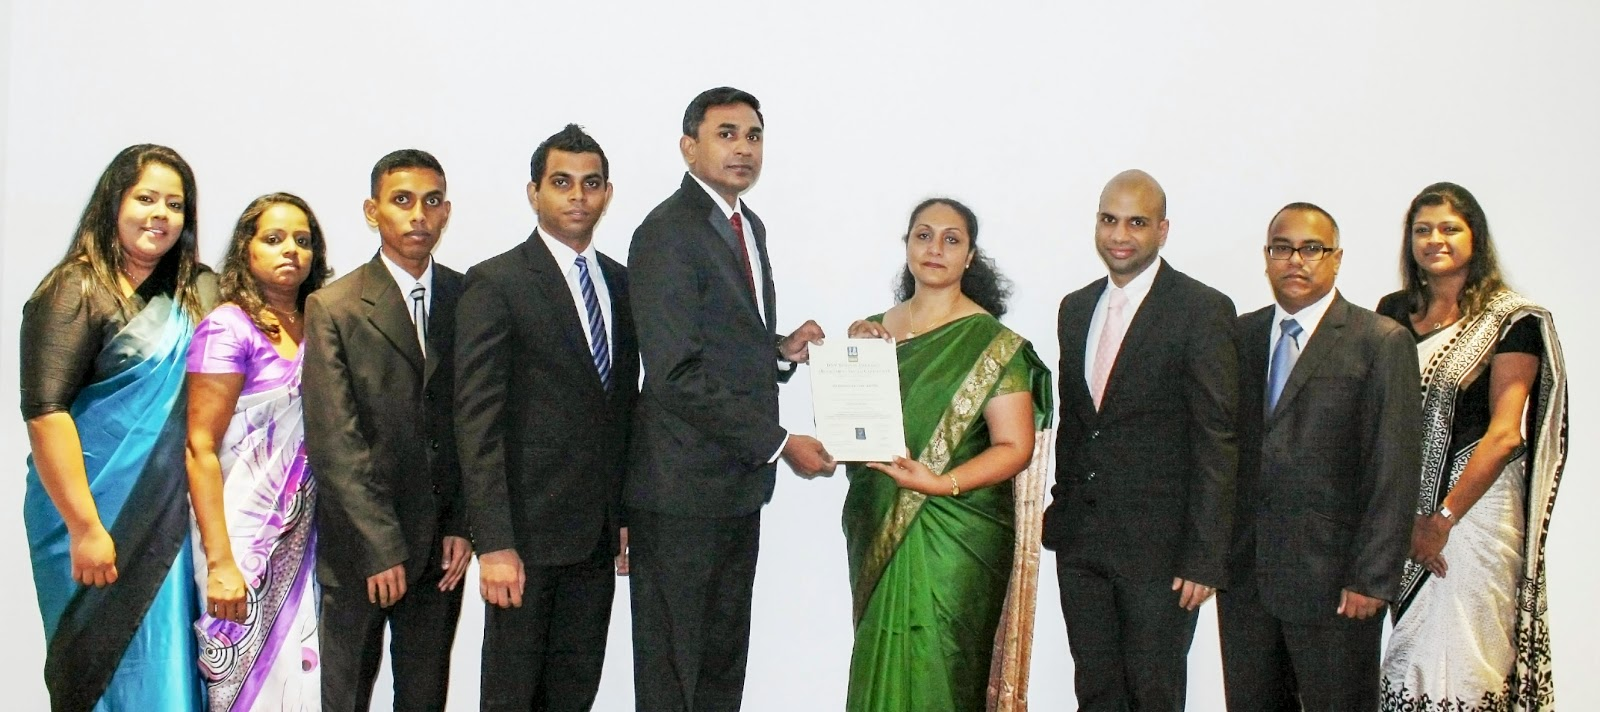 Ayesha Ediriwickrema - Assistant Manager - Human Resources, Thushari Chandima - Senior Executive Finance, Senaka Chathuranga - Assistant Accountant, Chamara Jayan – Quality & Information Security Lead, Dilush Perera – Director Operations, Shyama Wijayathunga - Manager Business Development - DNV Business Assurance Lanka Pvt Ltd, Akshay Hirdaramani - Director/CEO, Hariharan Padmanaban - Director - Business Development, Yashika DeSilva - Assistant Manager - Project Management.